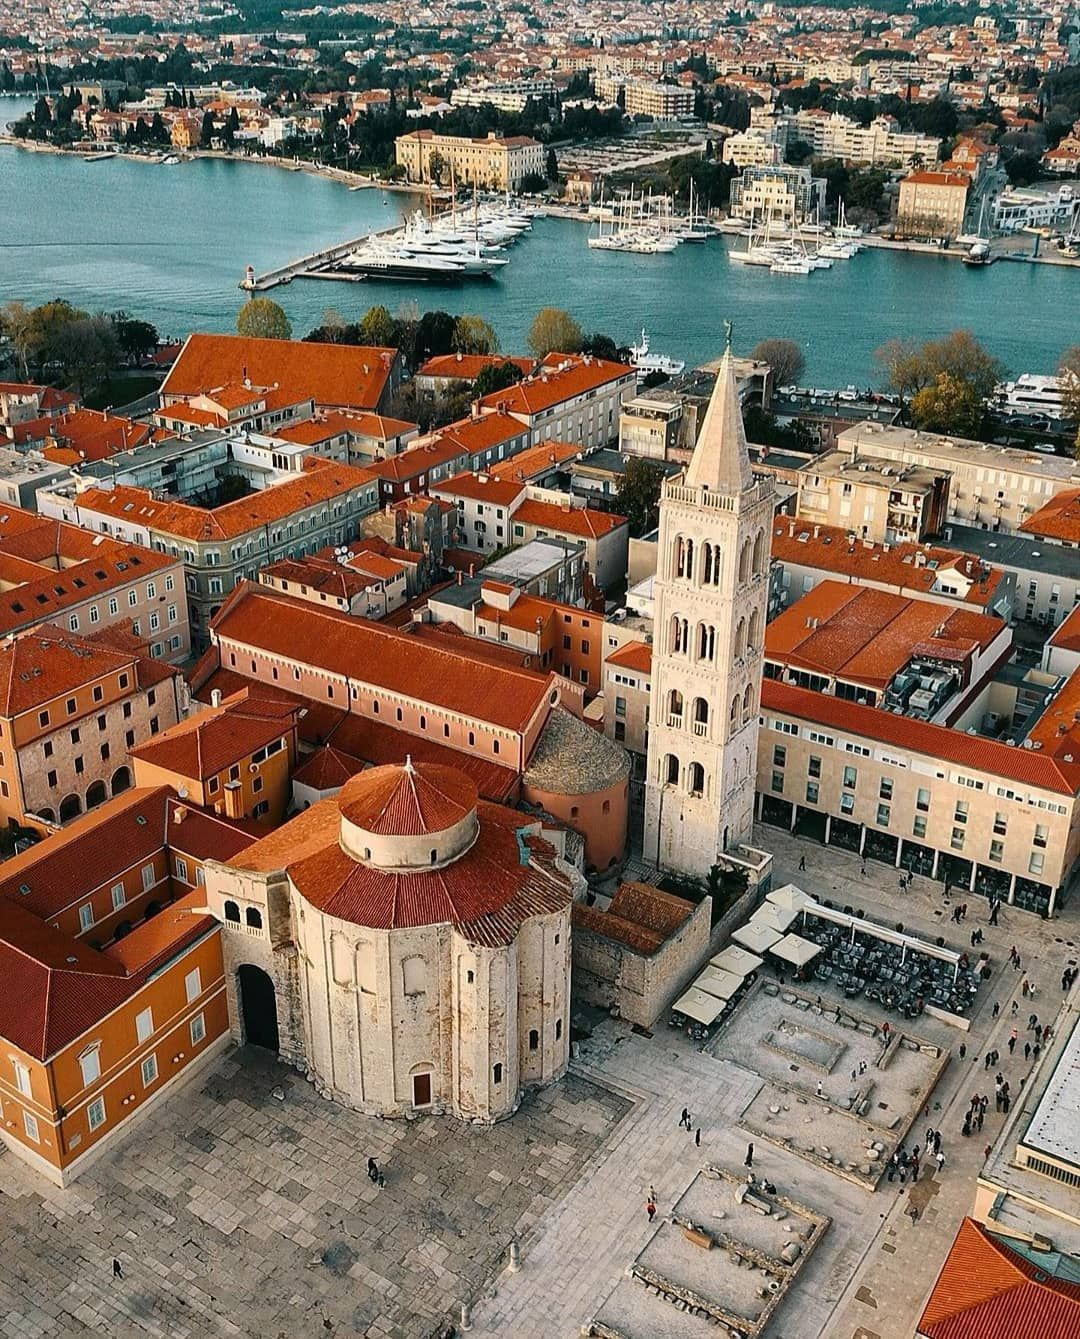 Zadar Region Tourist Board On Instagram Zadar Is A City With A 3 000 Year History And Been Recognised For Its Inte Zadar Historical Monuments Tourist Board